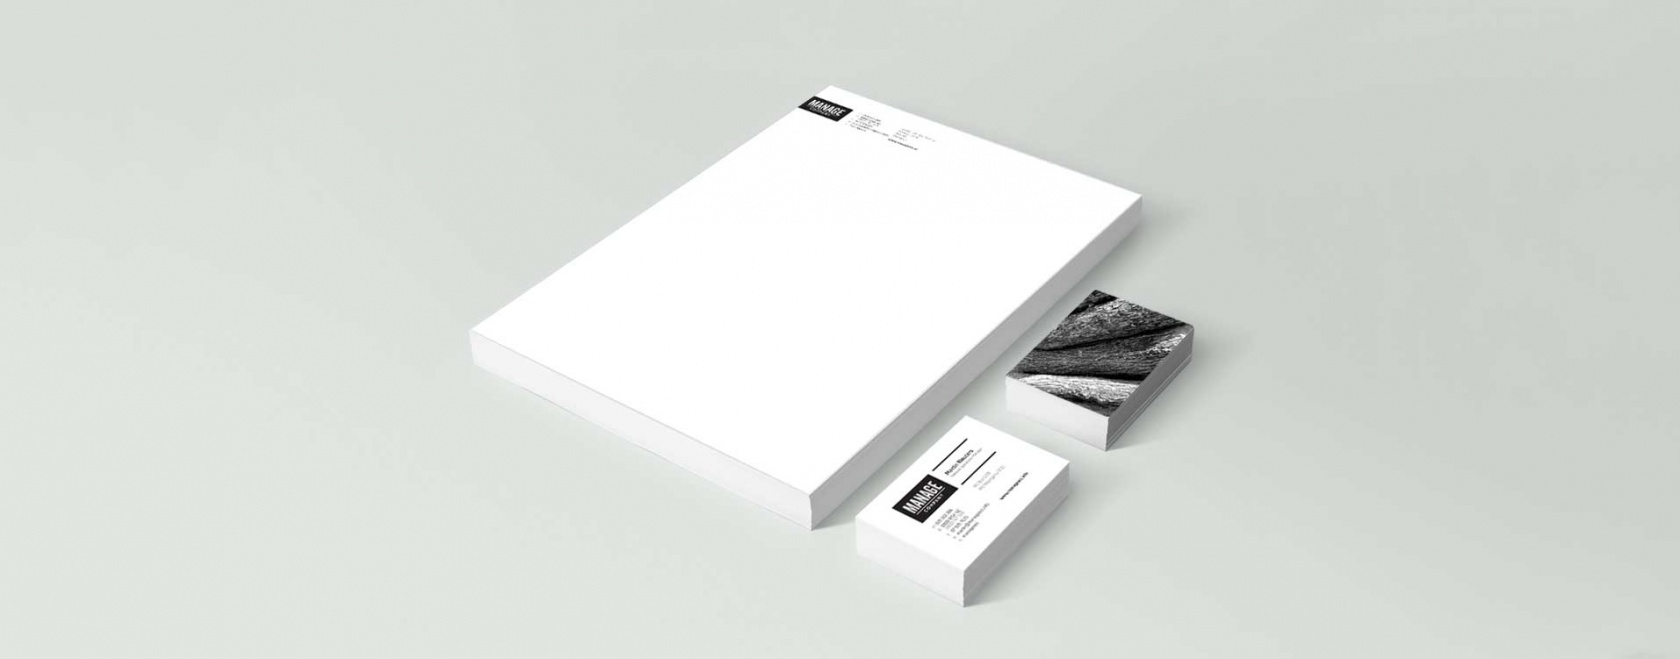 project-manageco-stationery